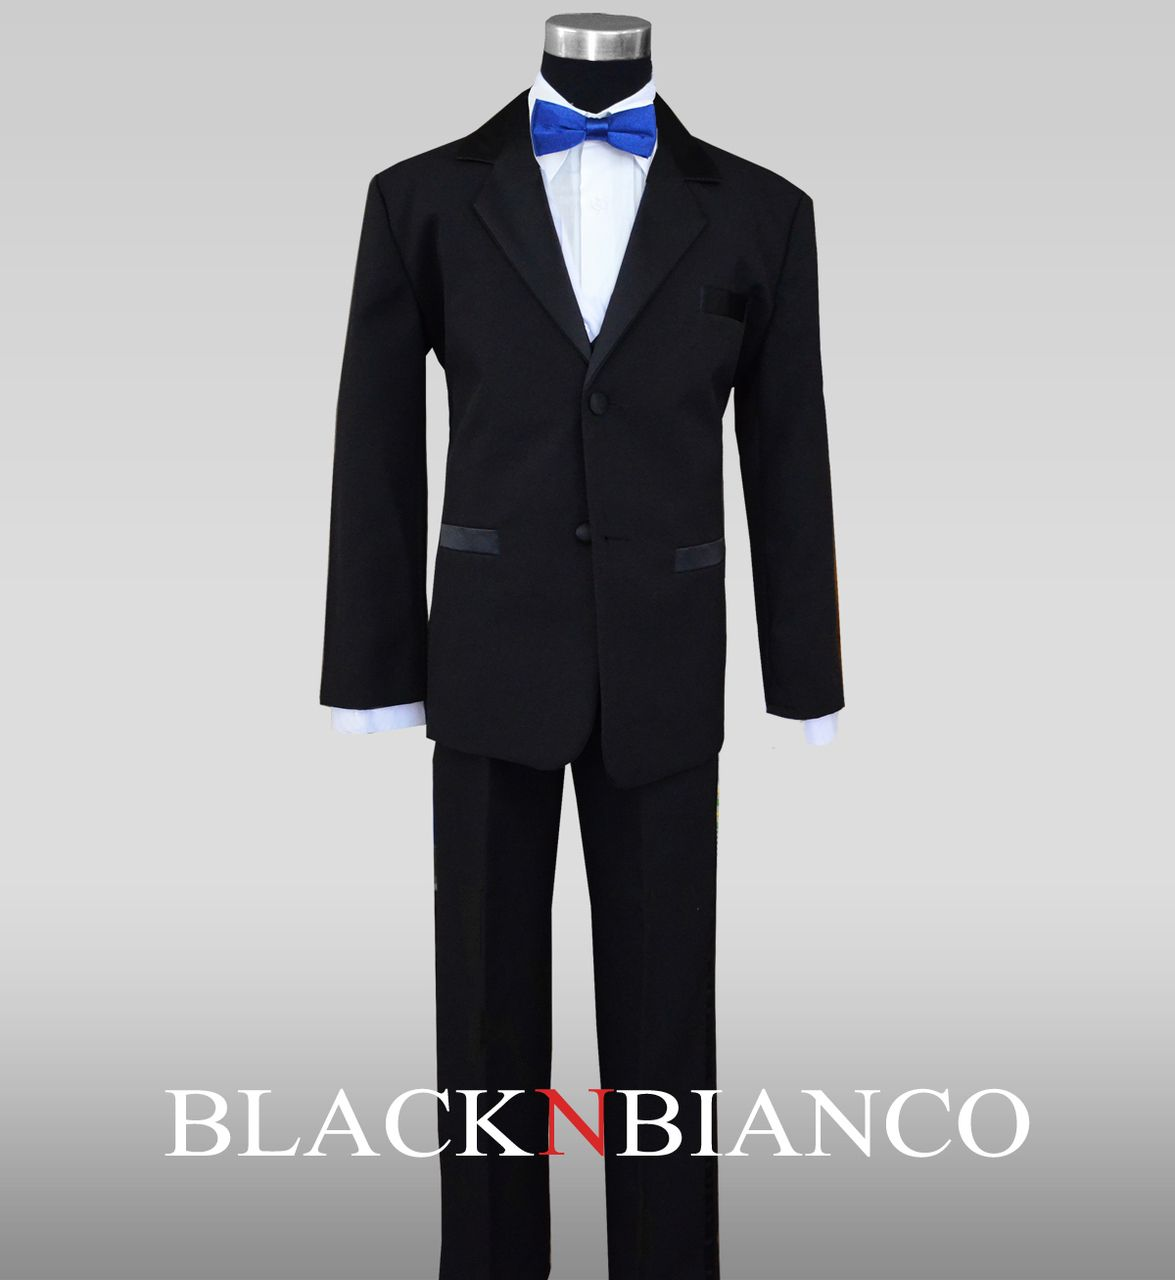 Boys Tuxedo with Royal Blue Slim Bow Tie | Pinterest ...